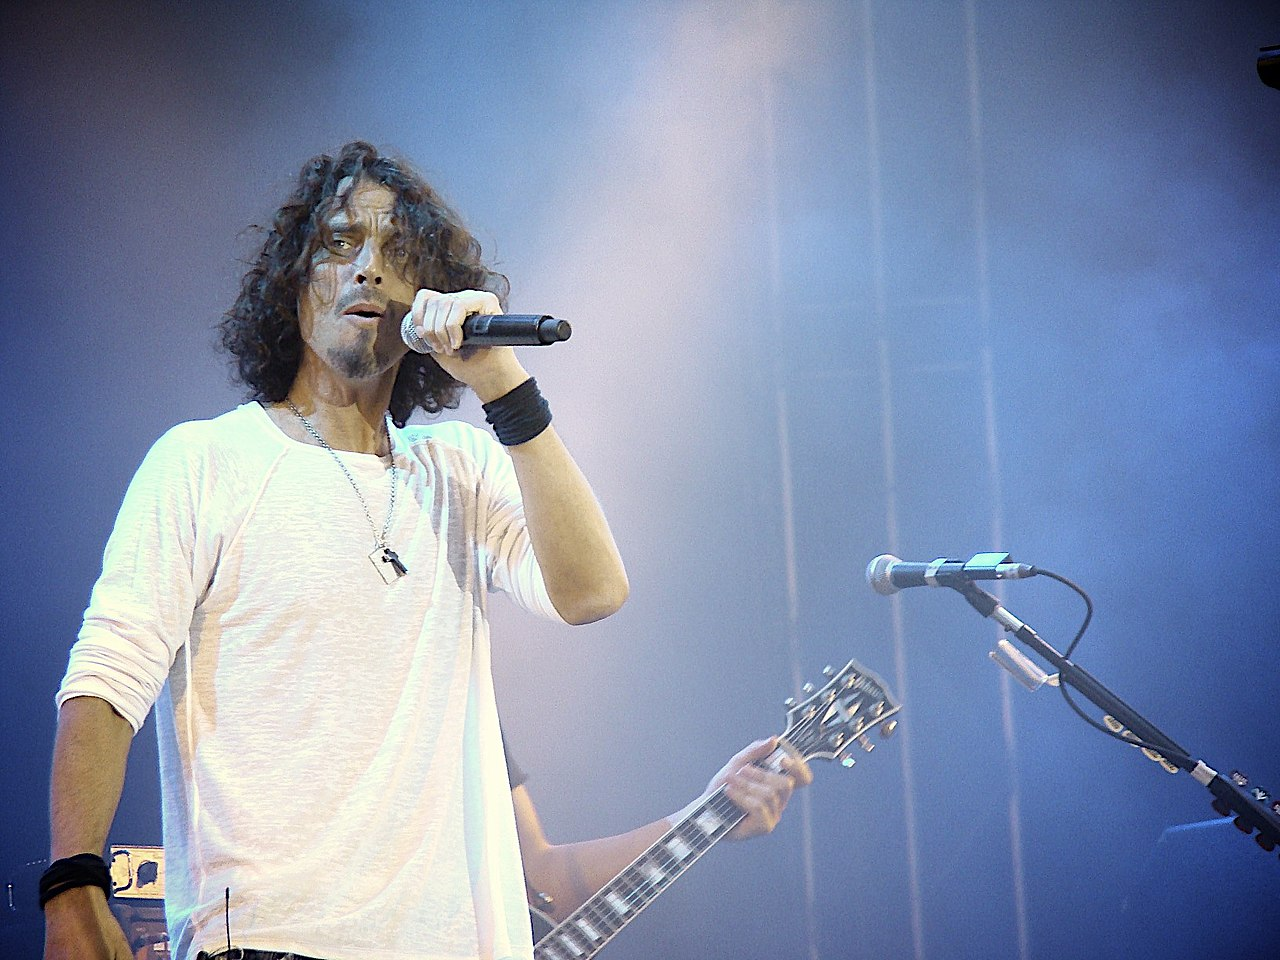 chris cornell - Andreas Eldh - Chris Cornell, CC BY 2.0, https://commons.wikimedia.org/w/index.php?curid=61741680